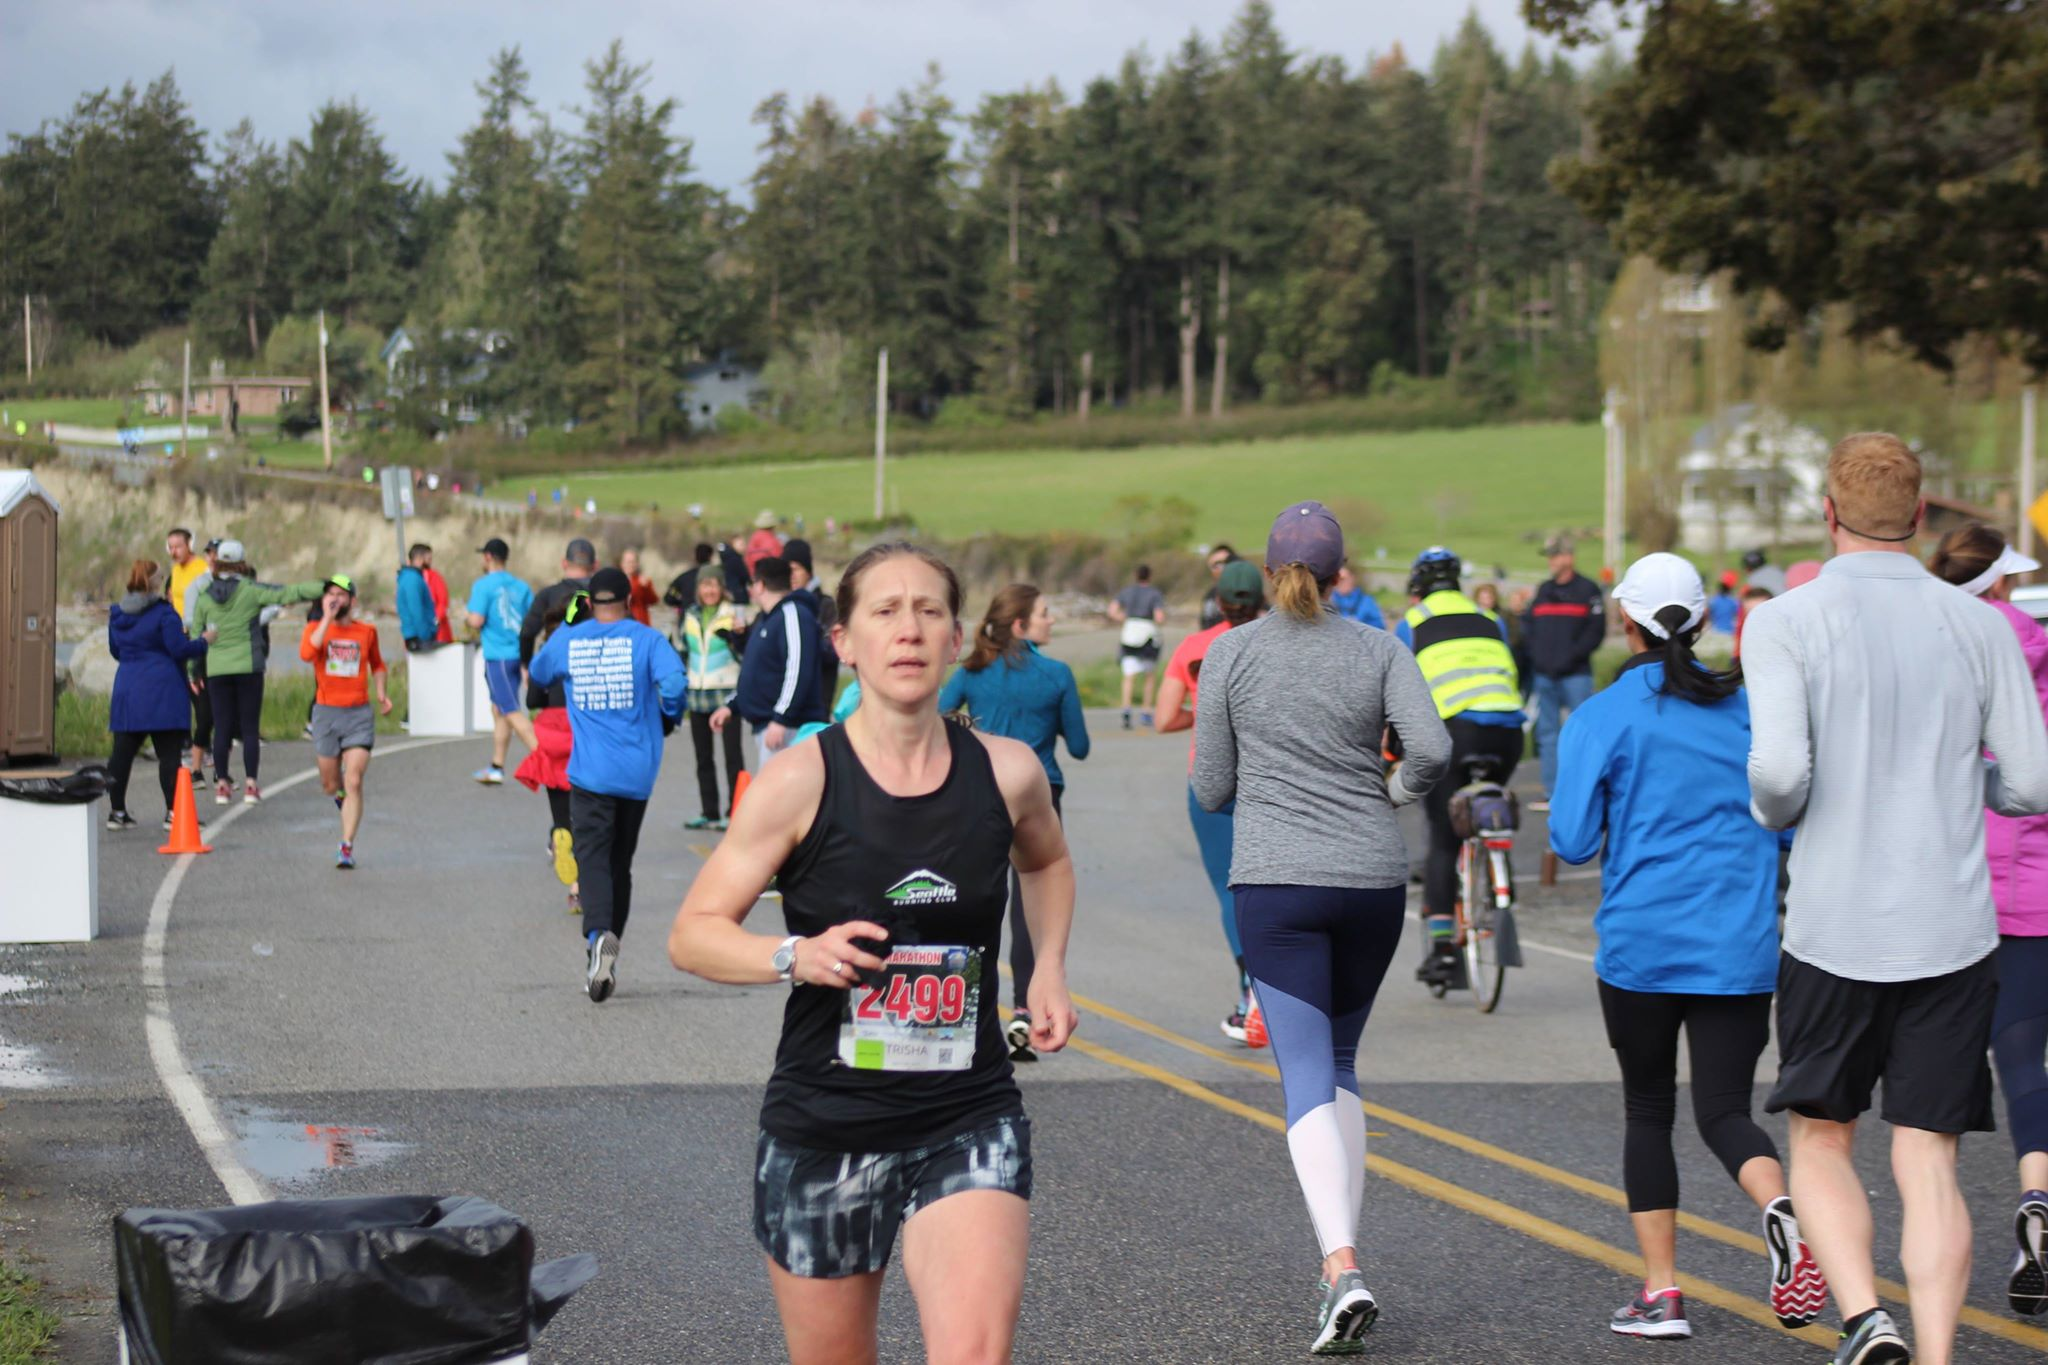 Just before the big hill at the Whidbey Island Half Marathon.